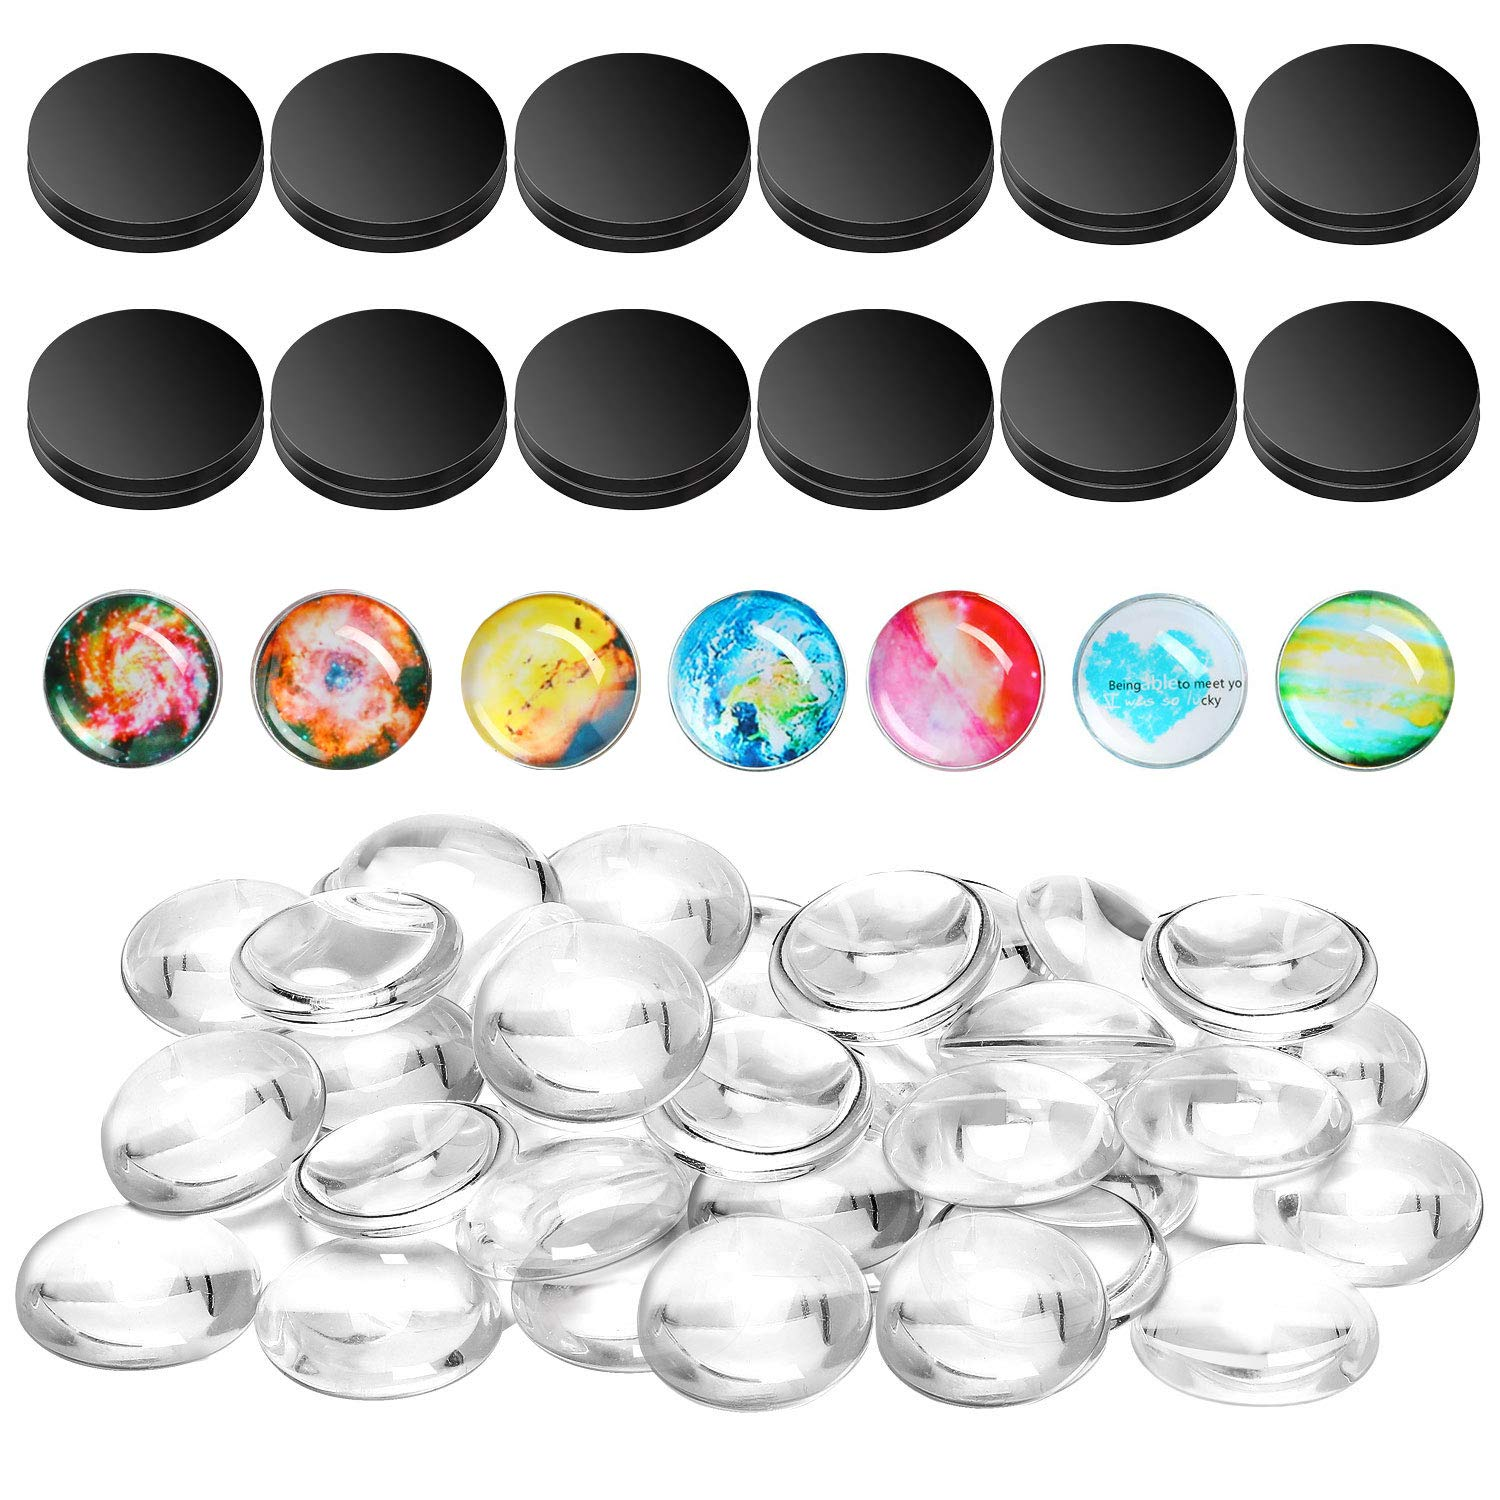 DIY Refrigerator Magnets 12 Pack Changeable Background Fridge Magnets 1-1//4 Inch Replaceable Photo Cards Magnets Decoration Creative Image Display